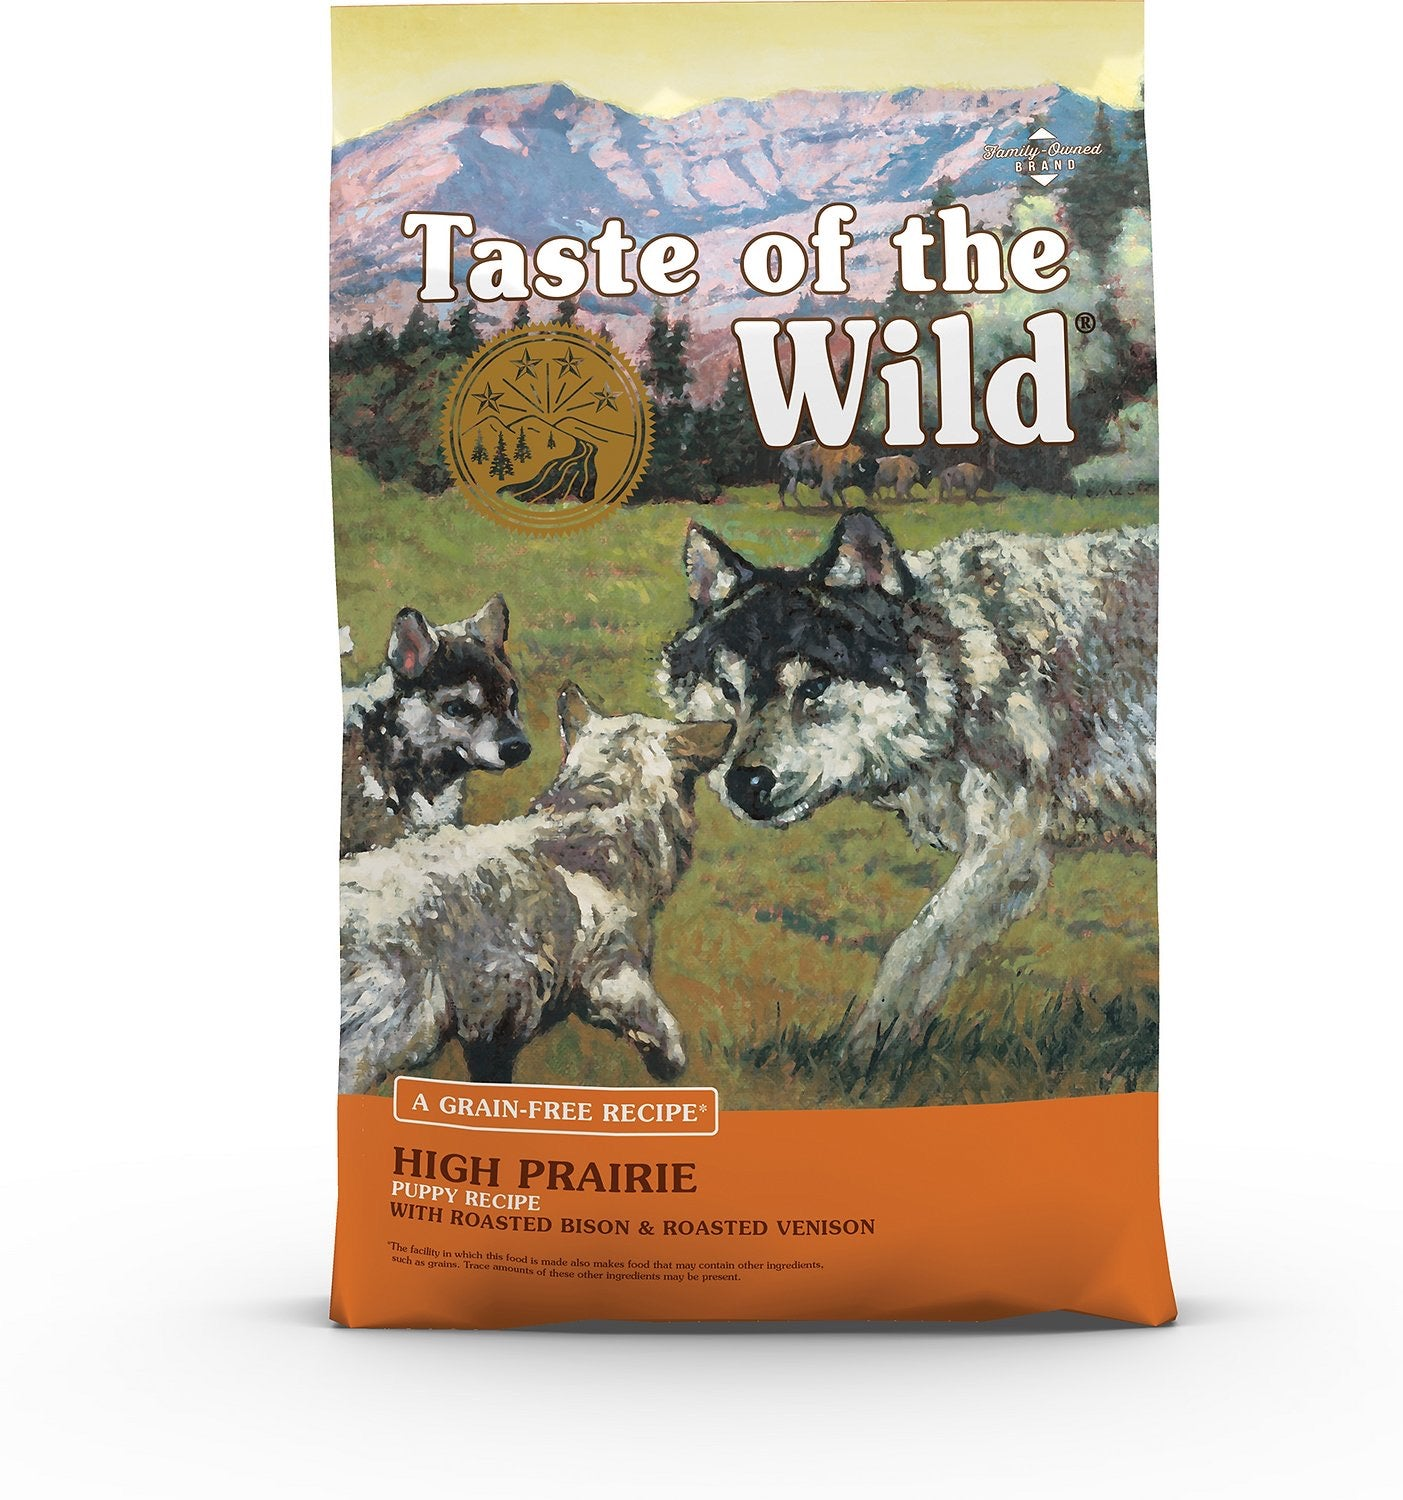 Taste of the Wild - Puppy Recipe (dog)